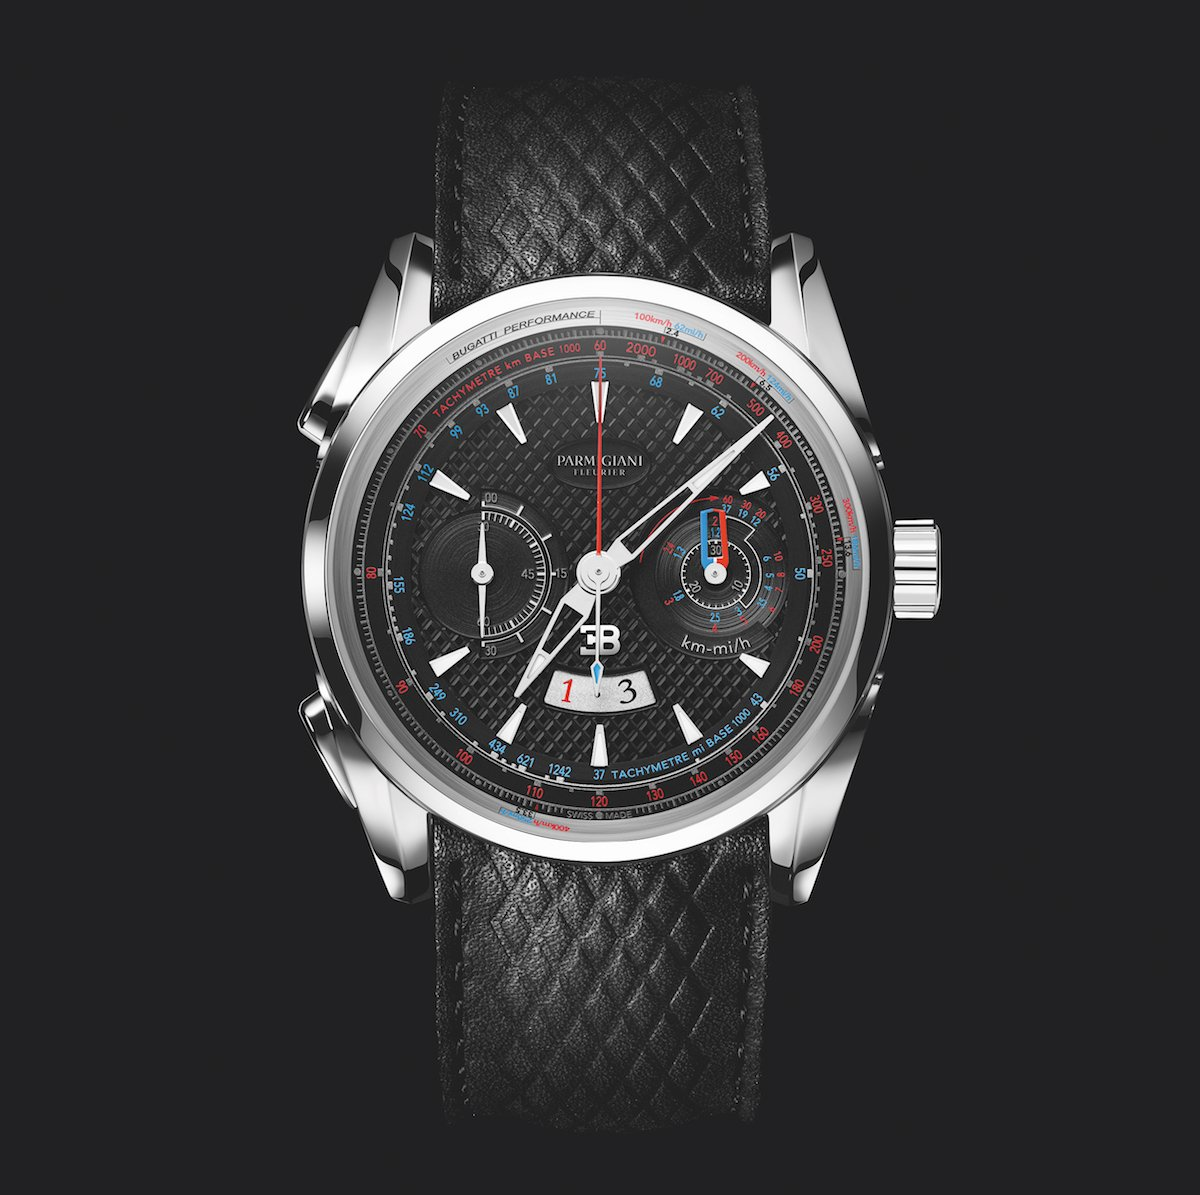 The Bugatti Aerolithe Performance is a great watch.